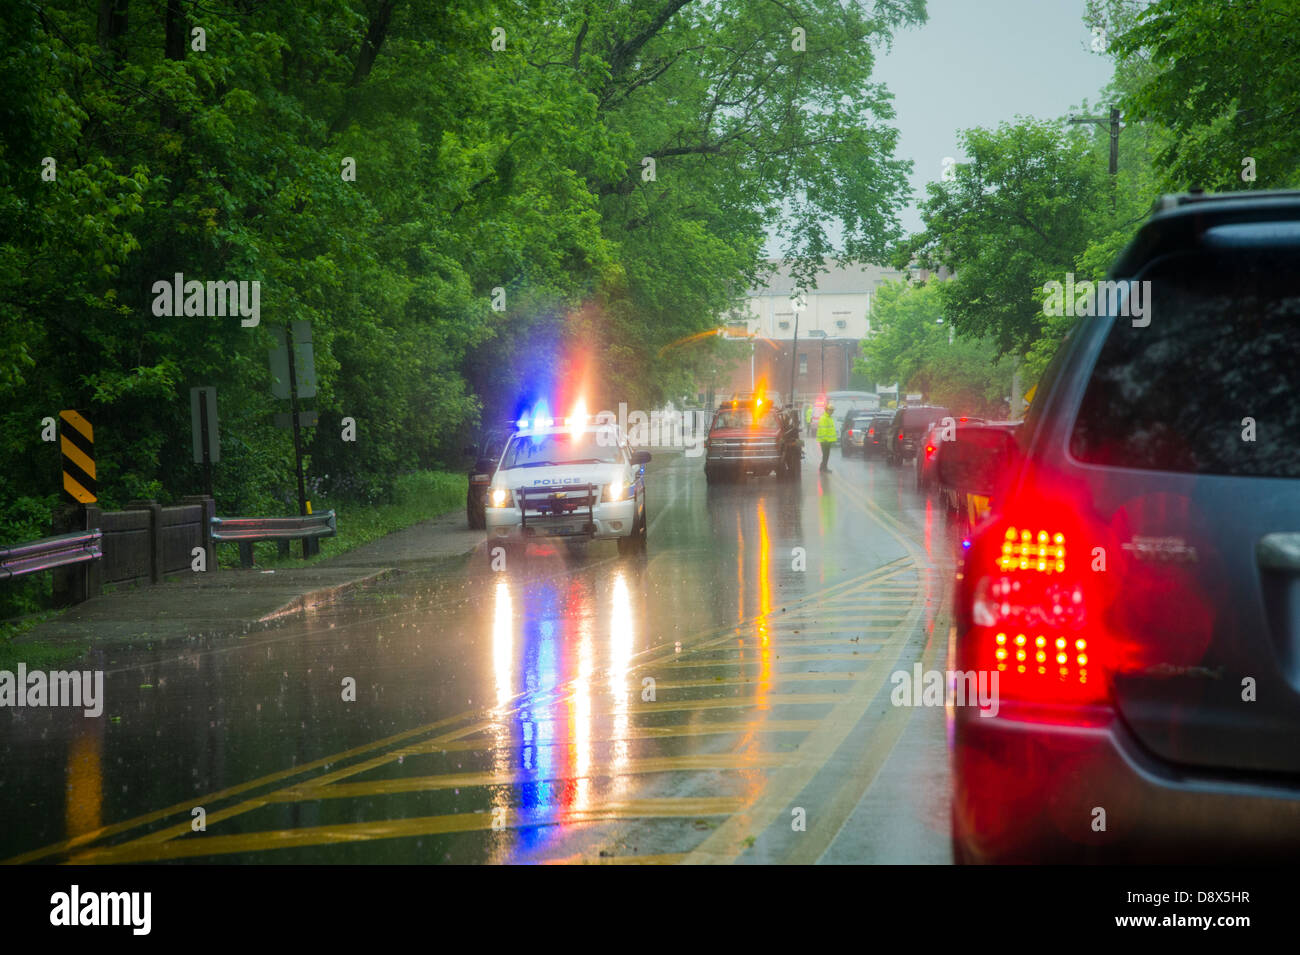 Traffic Jam In Rain Caused By Car Accident - Stock Image